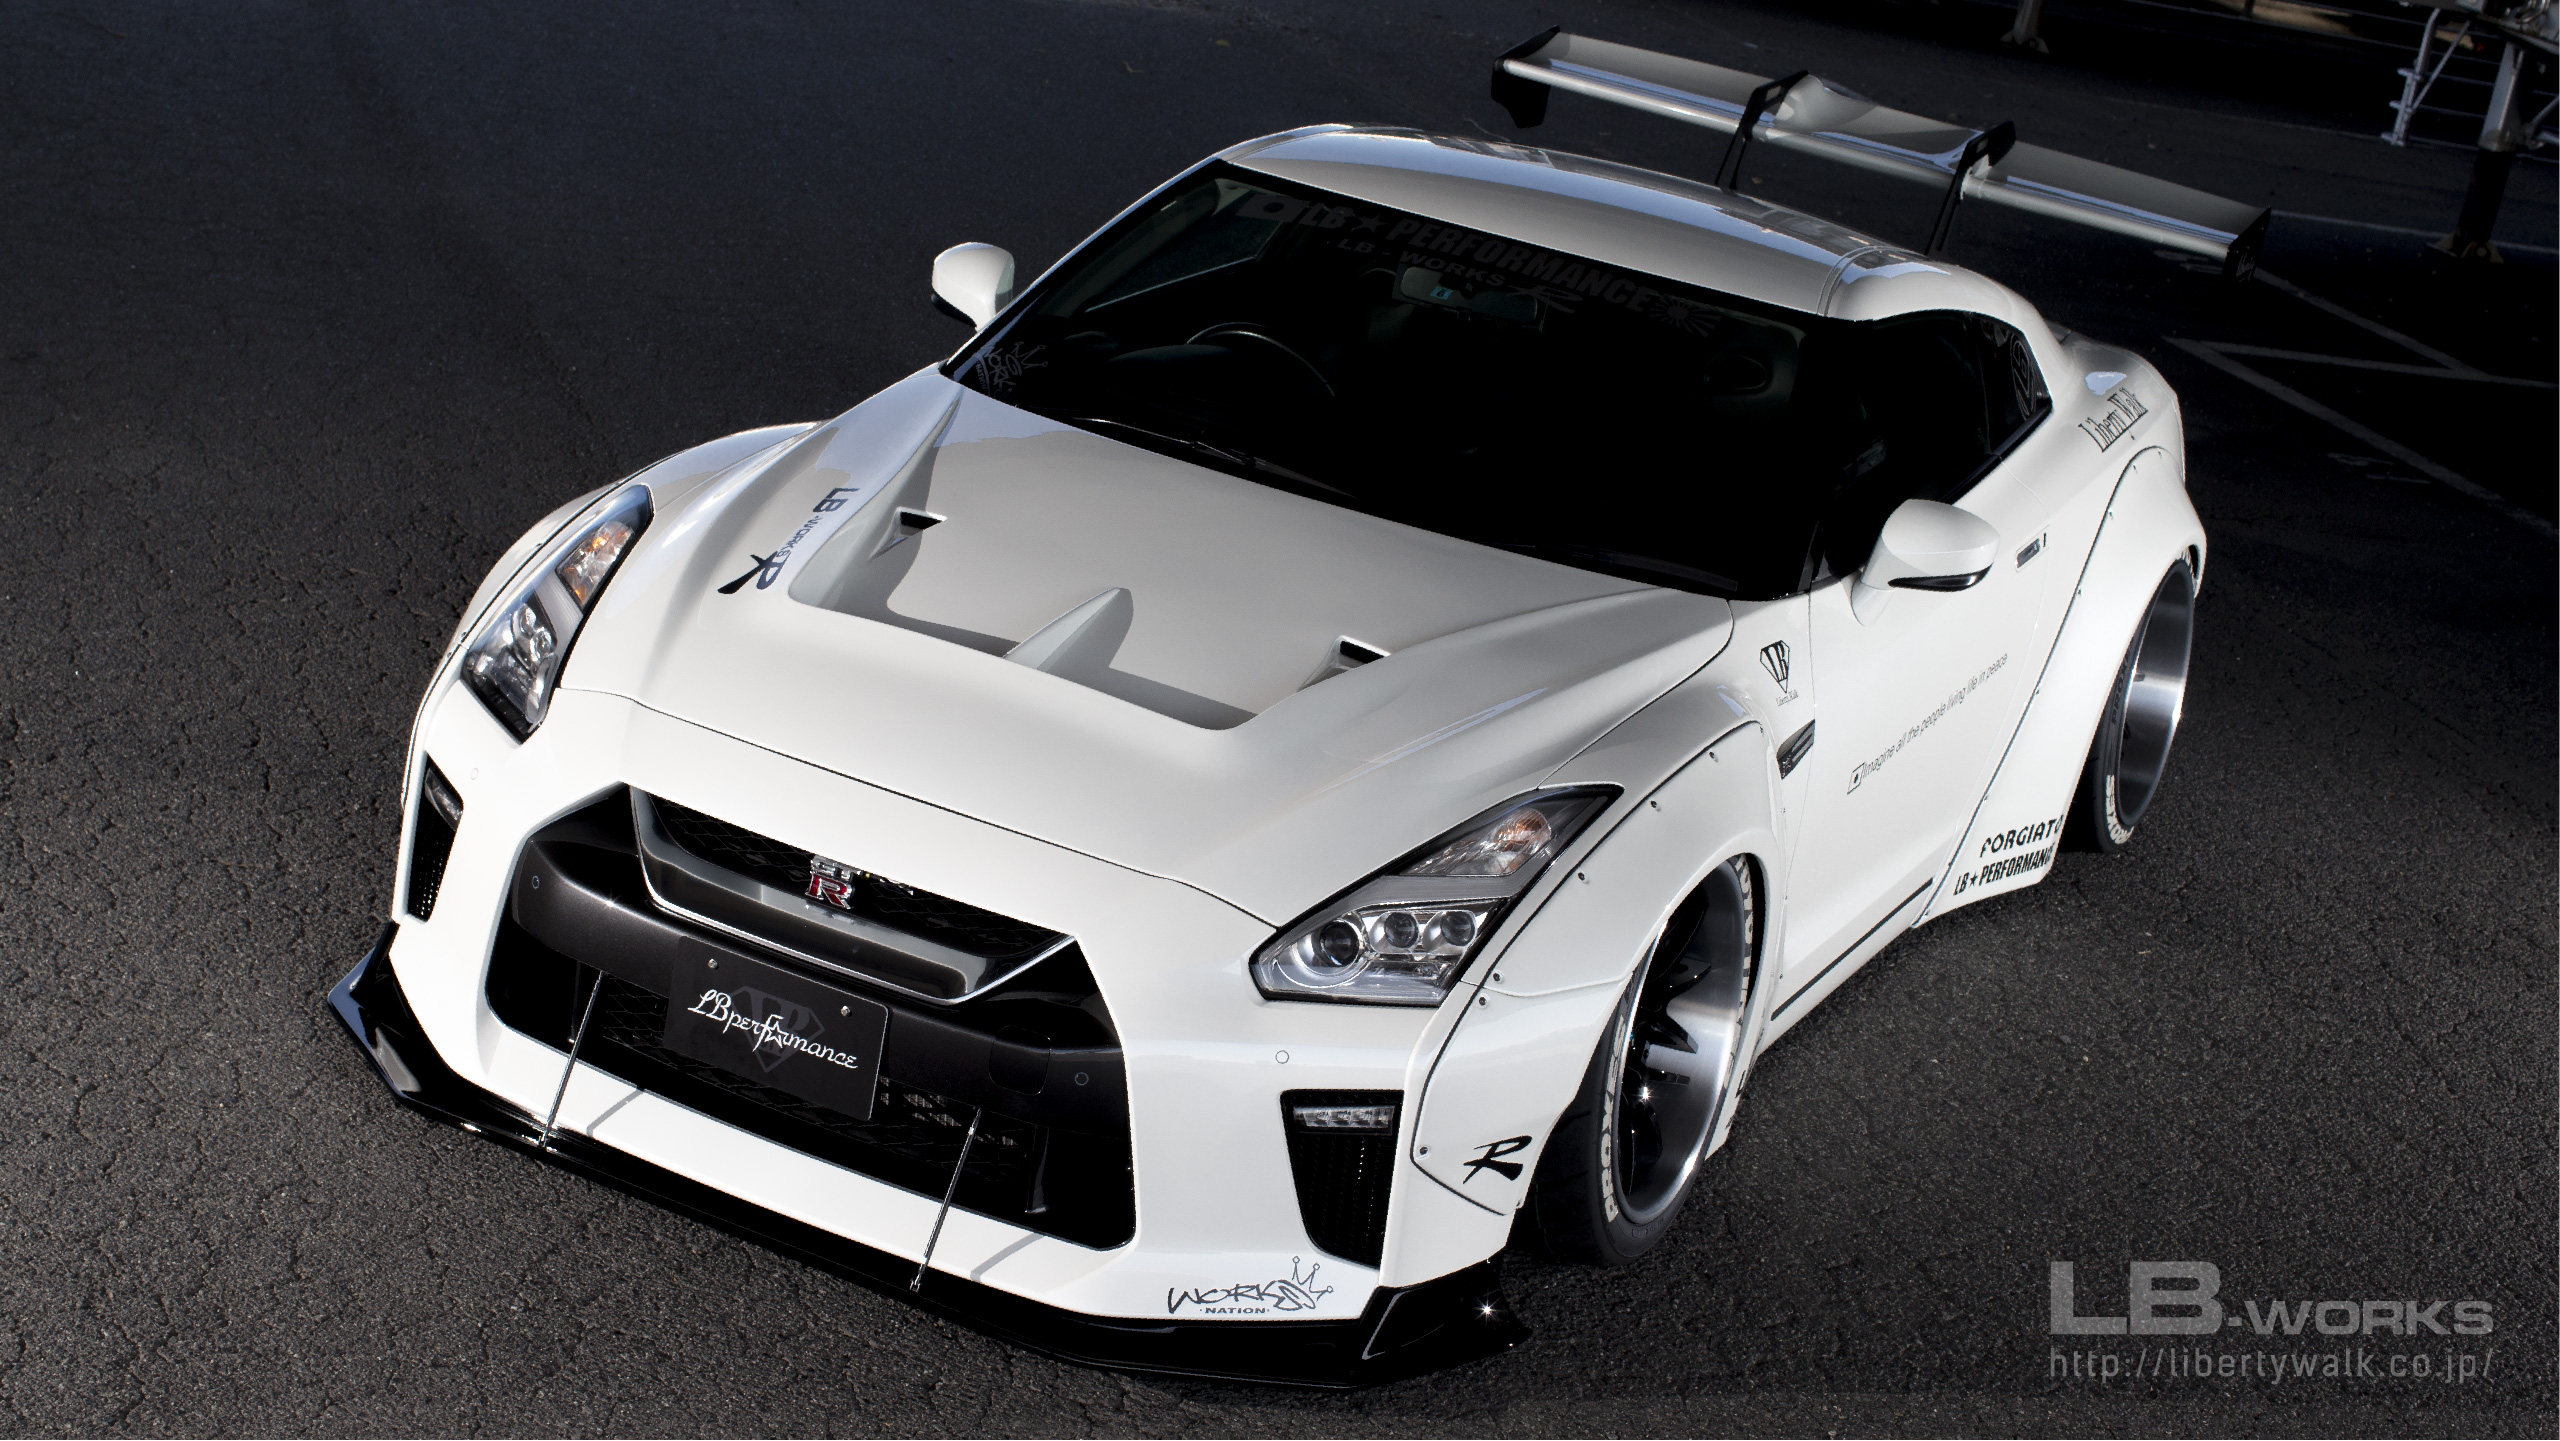 19-80 LB-WORKS NISSAN GT-R R35 type 1.5